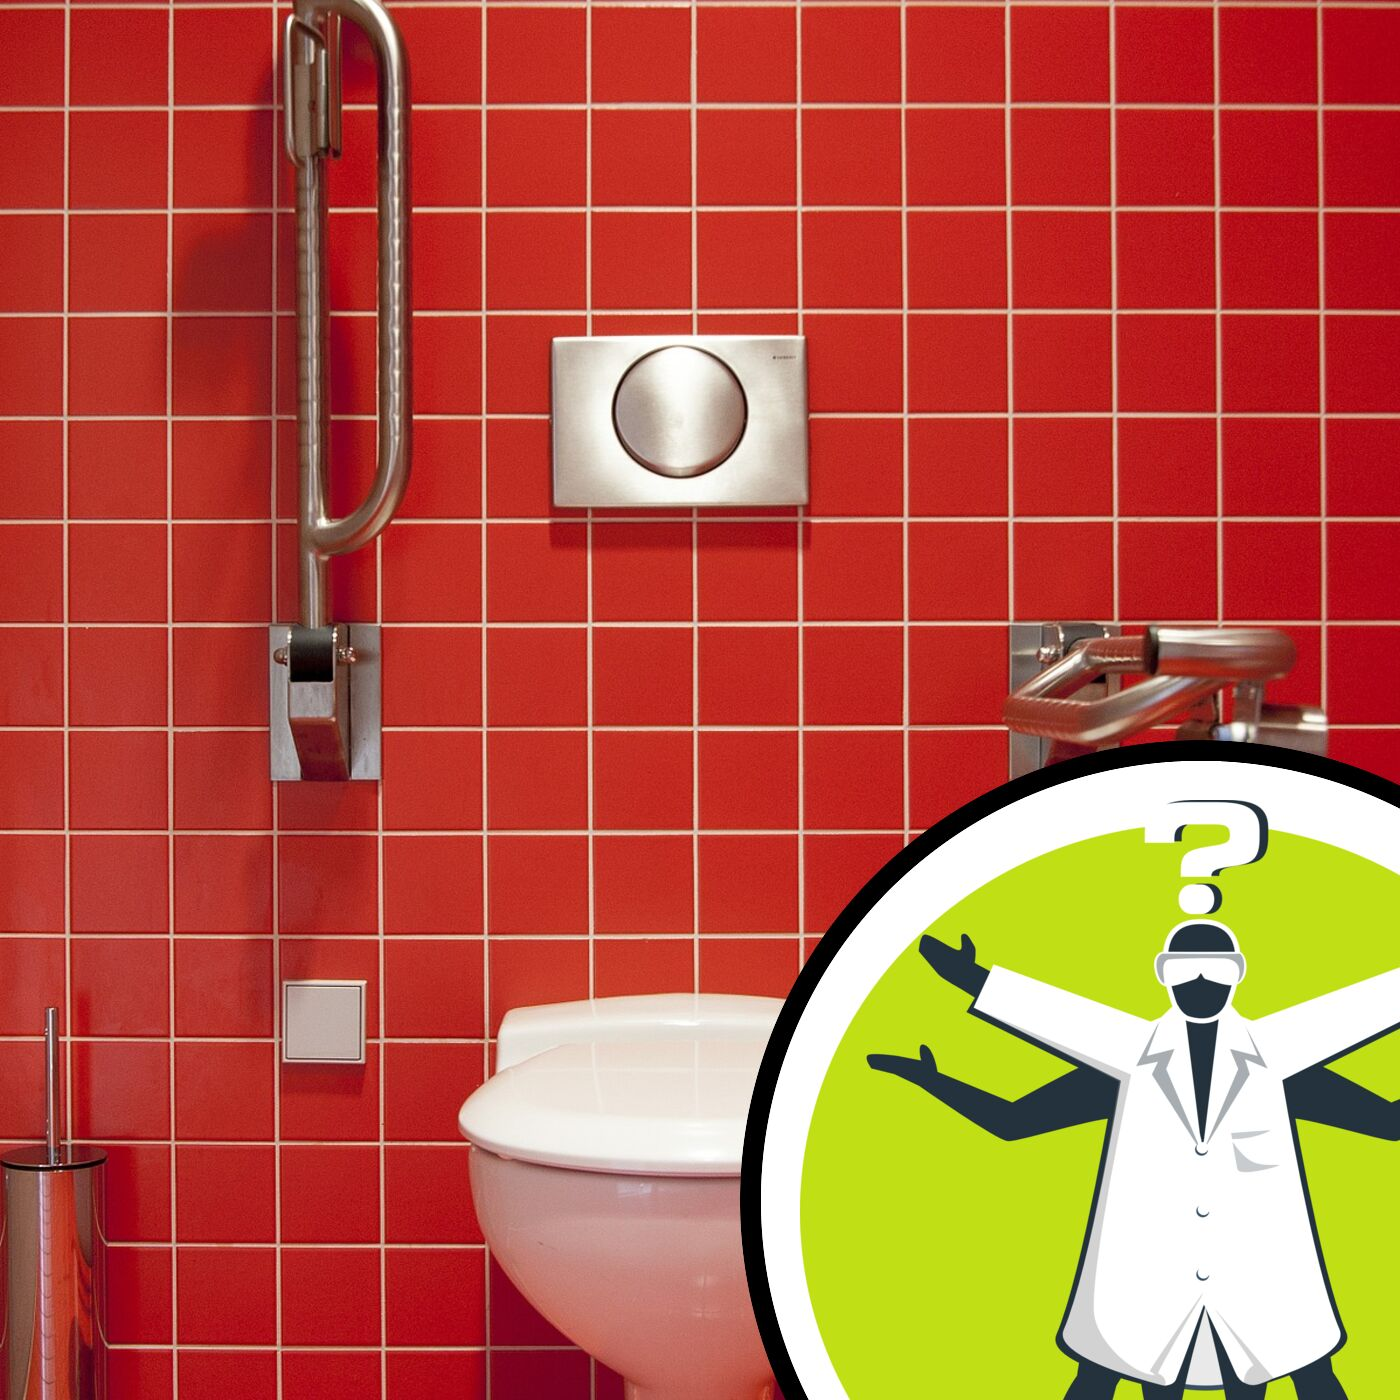 Why do some people shiver when they pee?